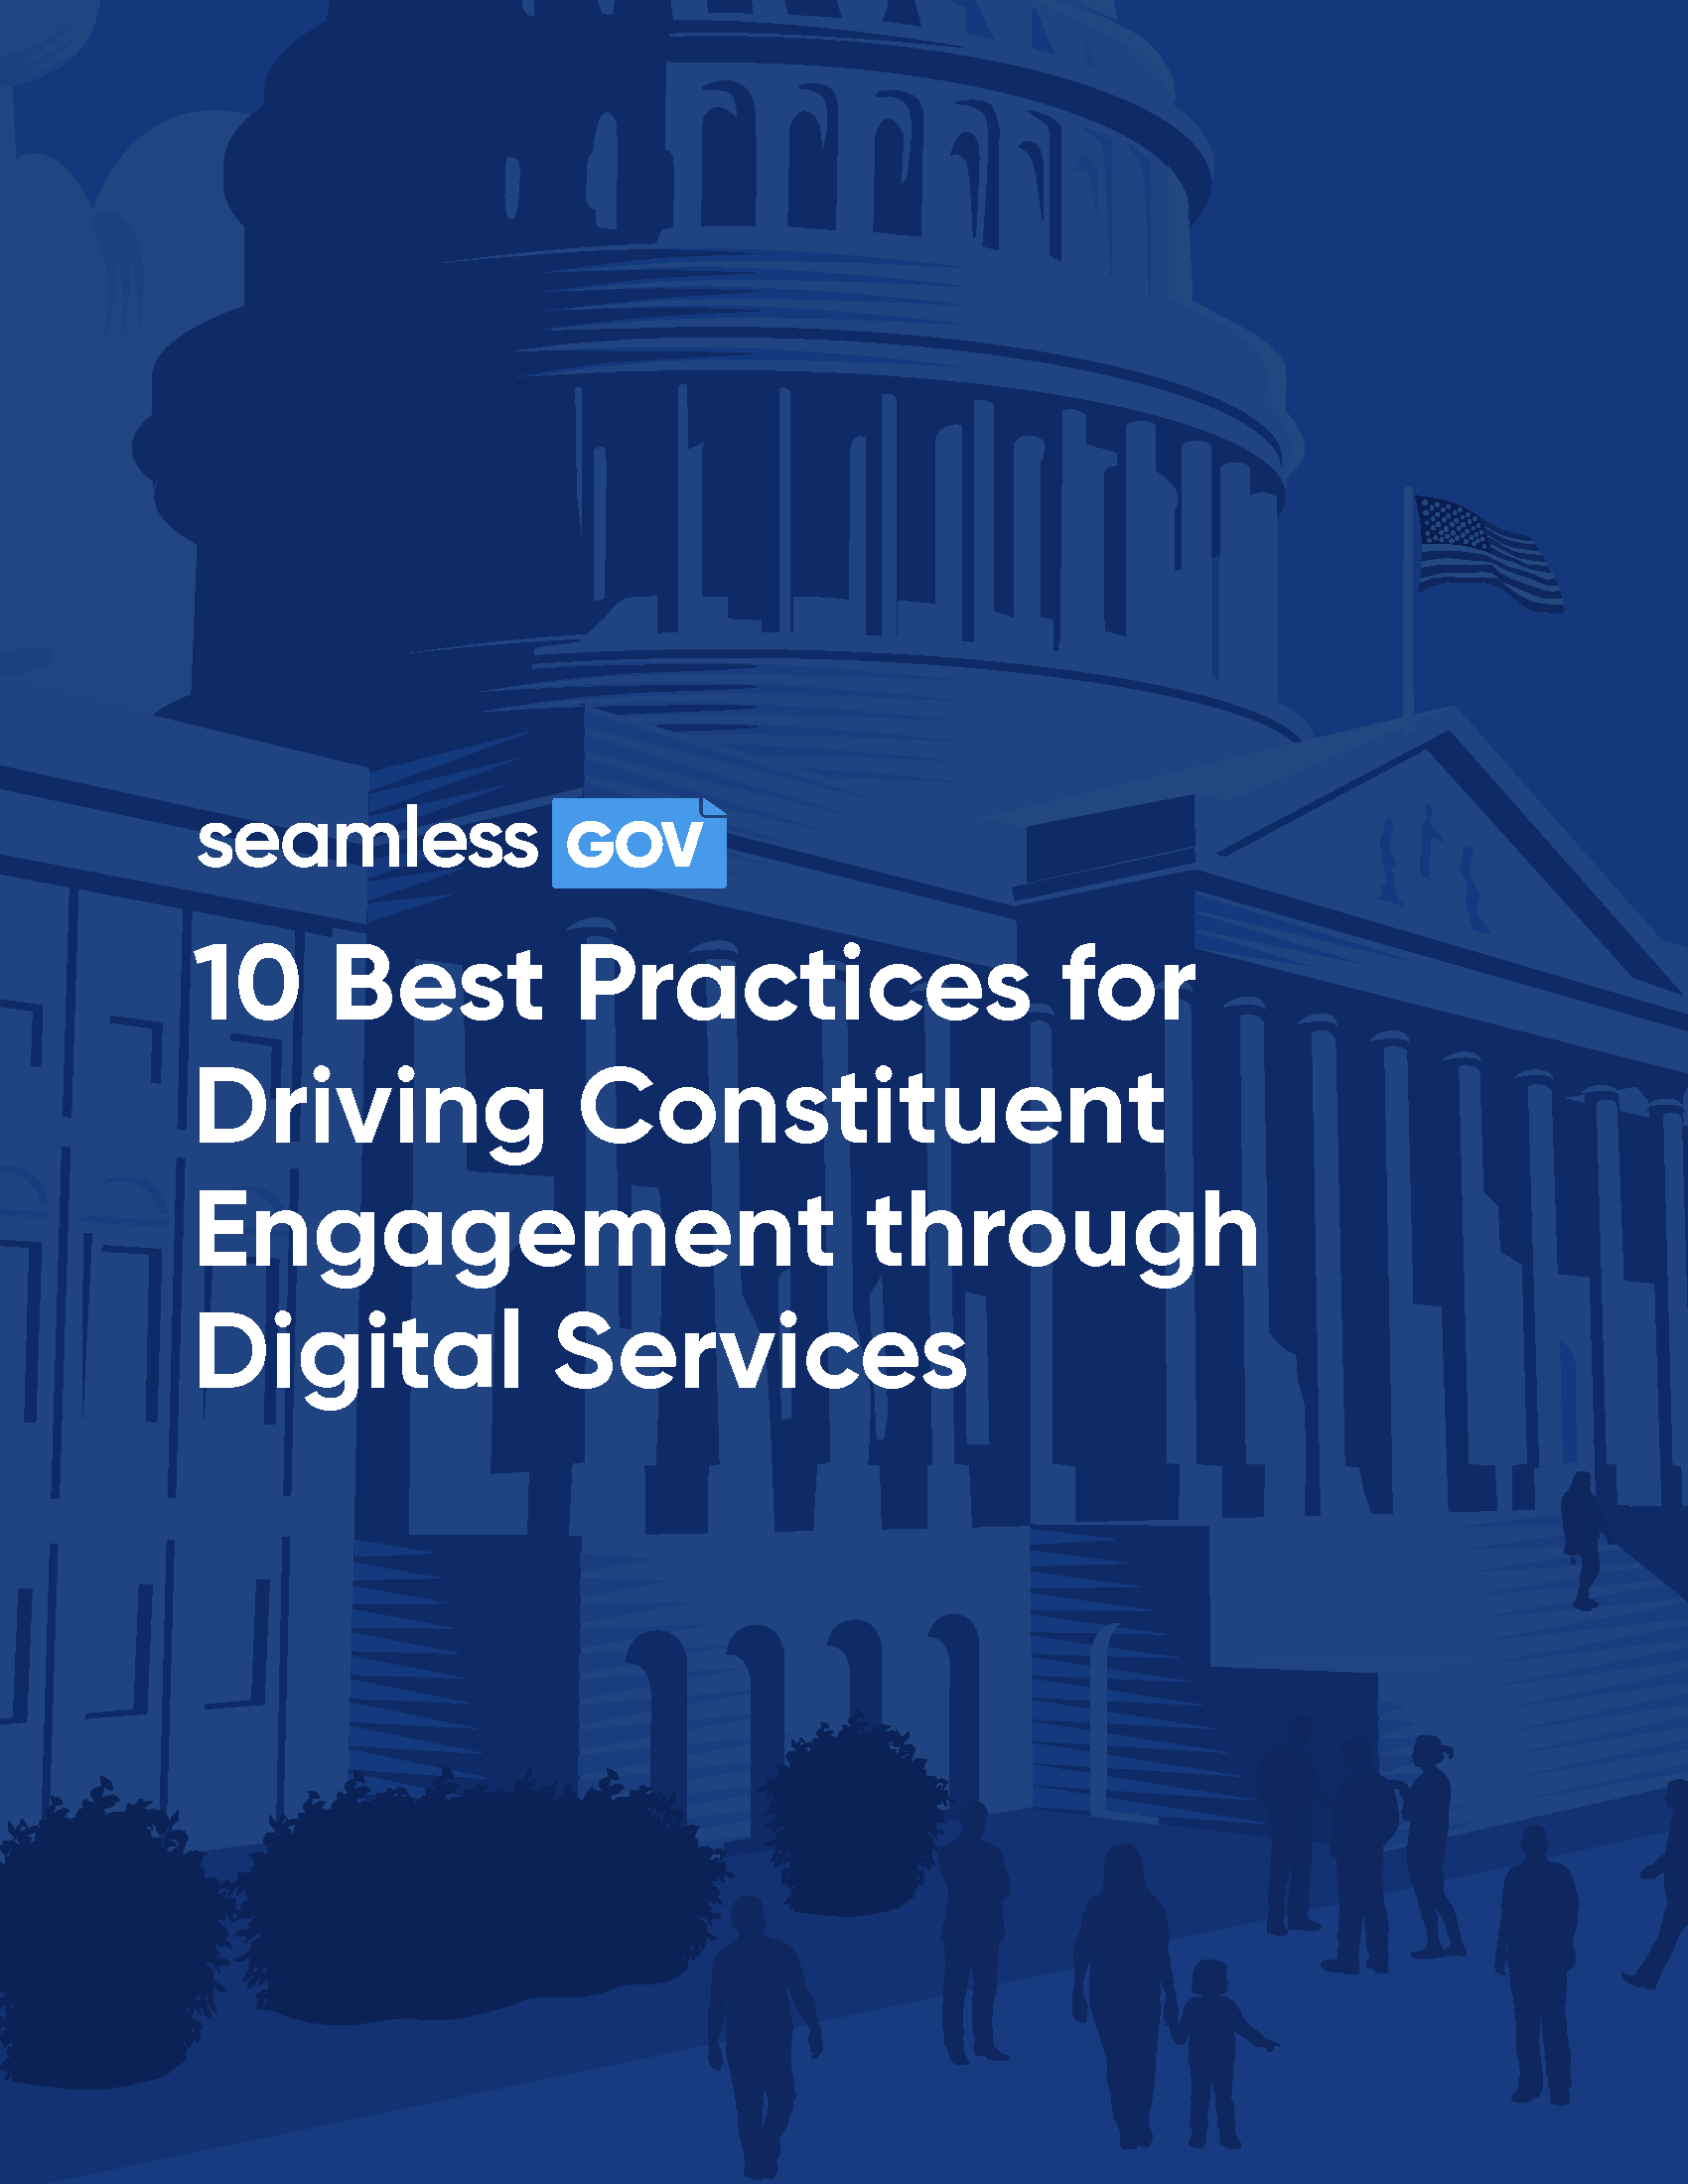 10 Best Practices in Driving Constituent Engagement through Digital Services